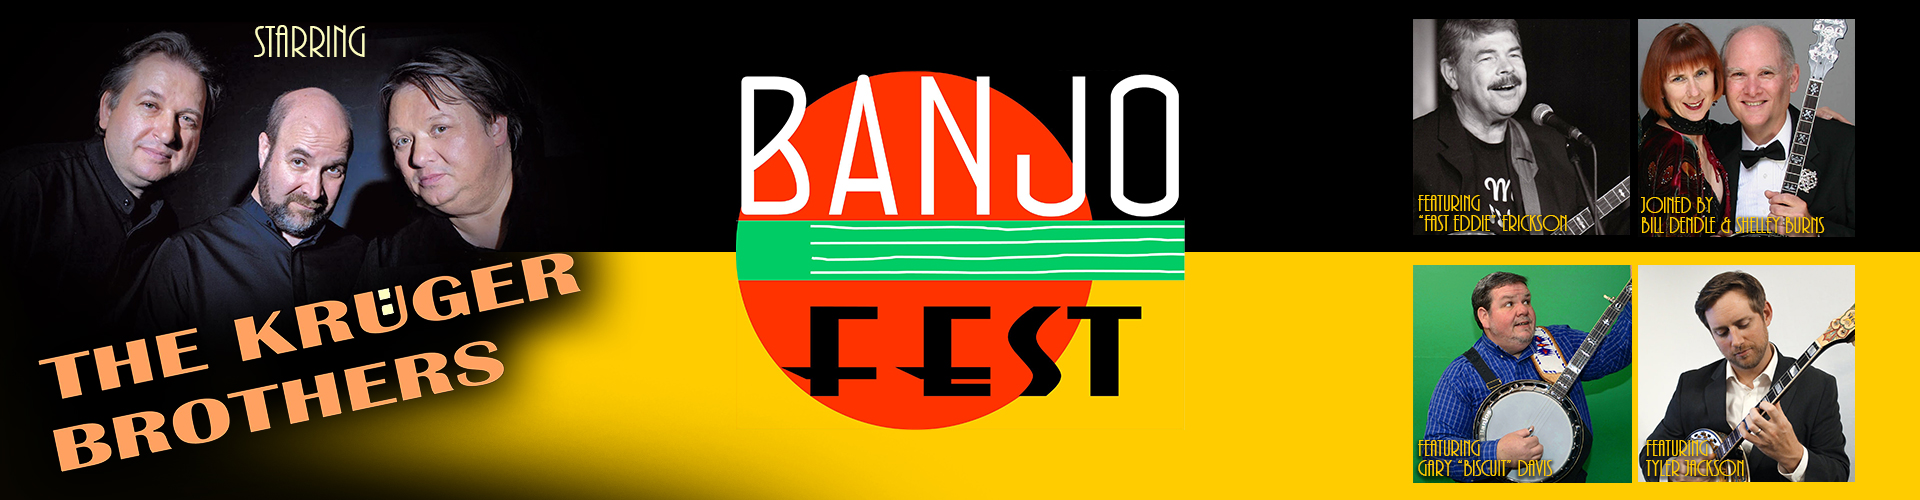 BANJO FEST featuring The Kruger Brothers